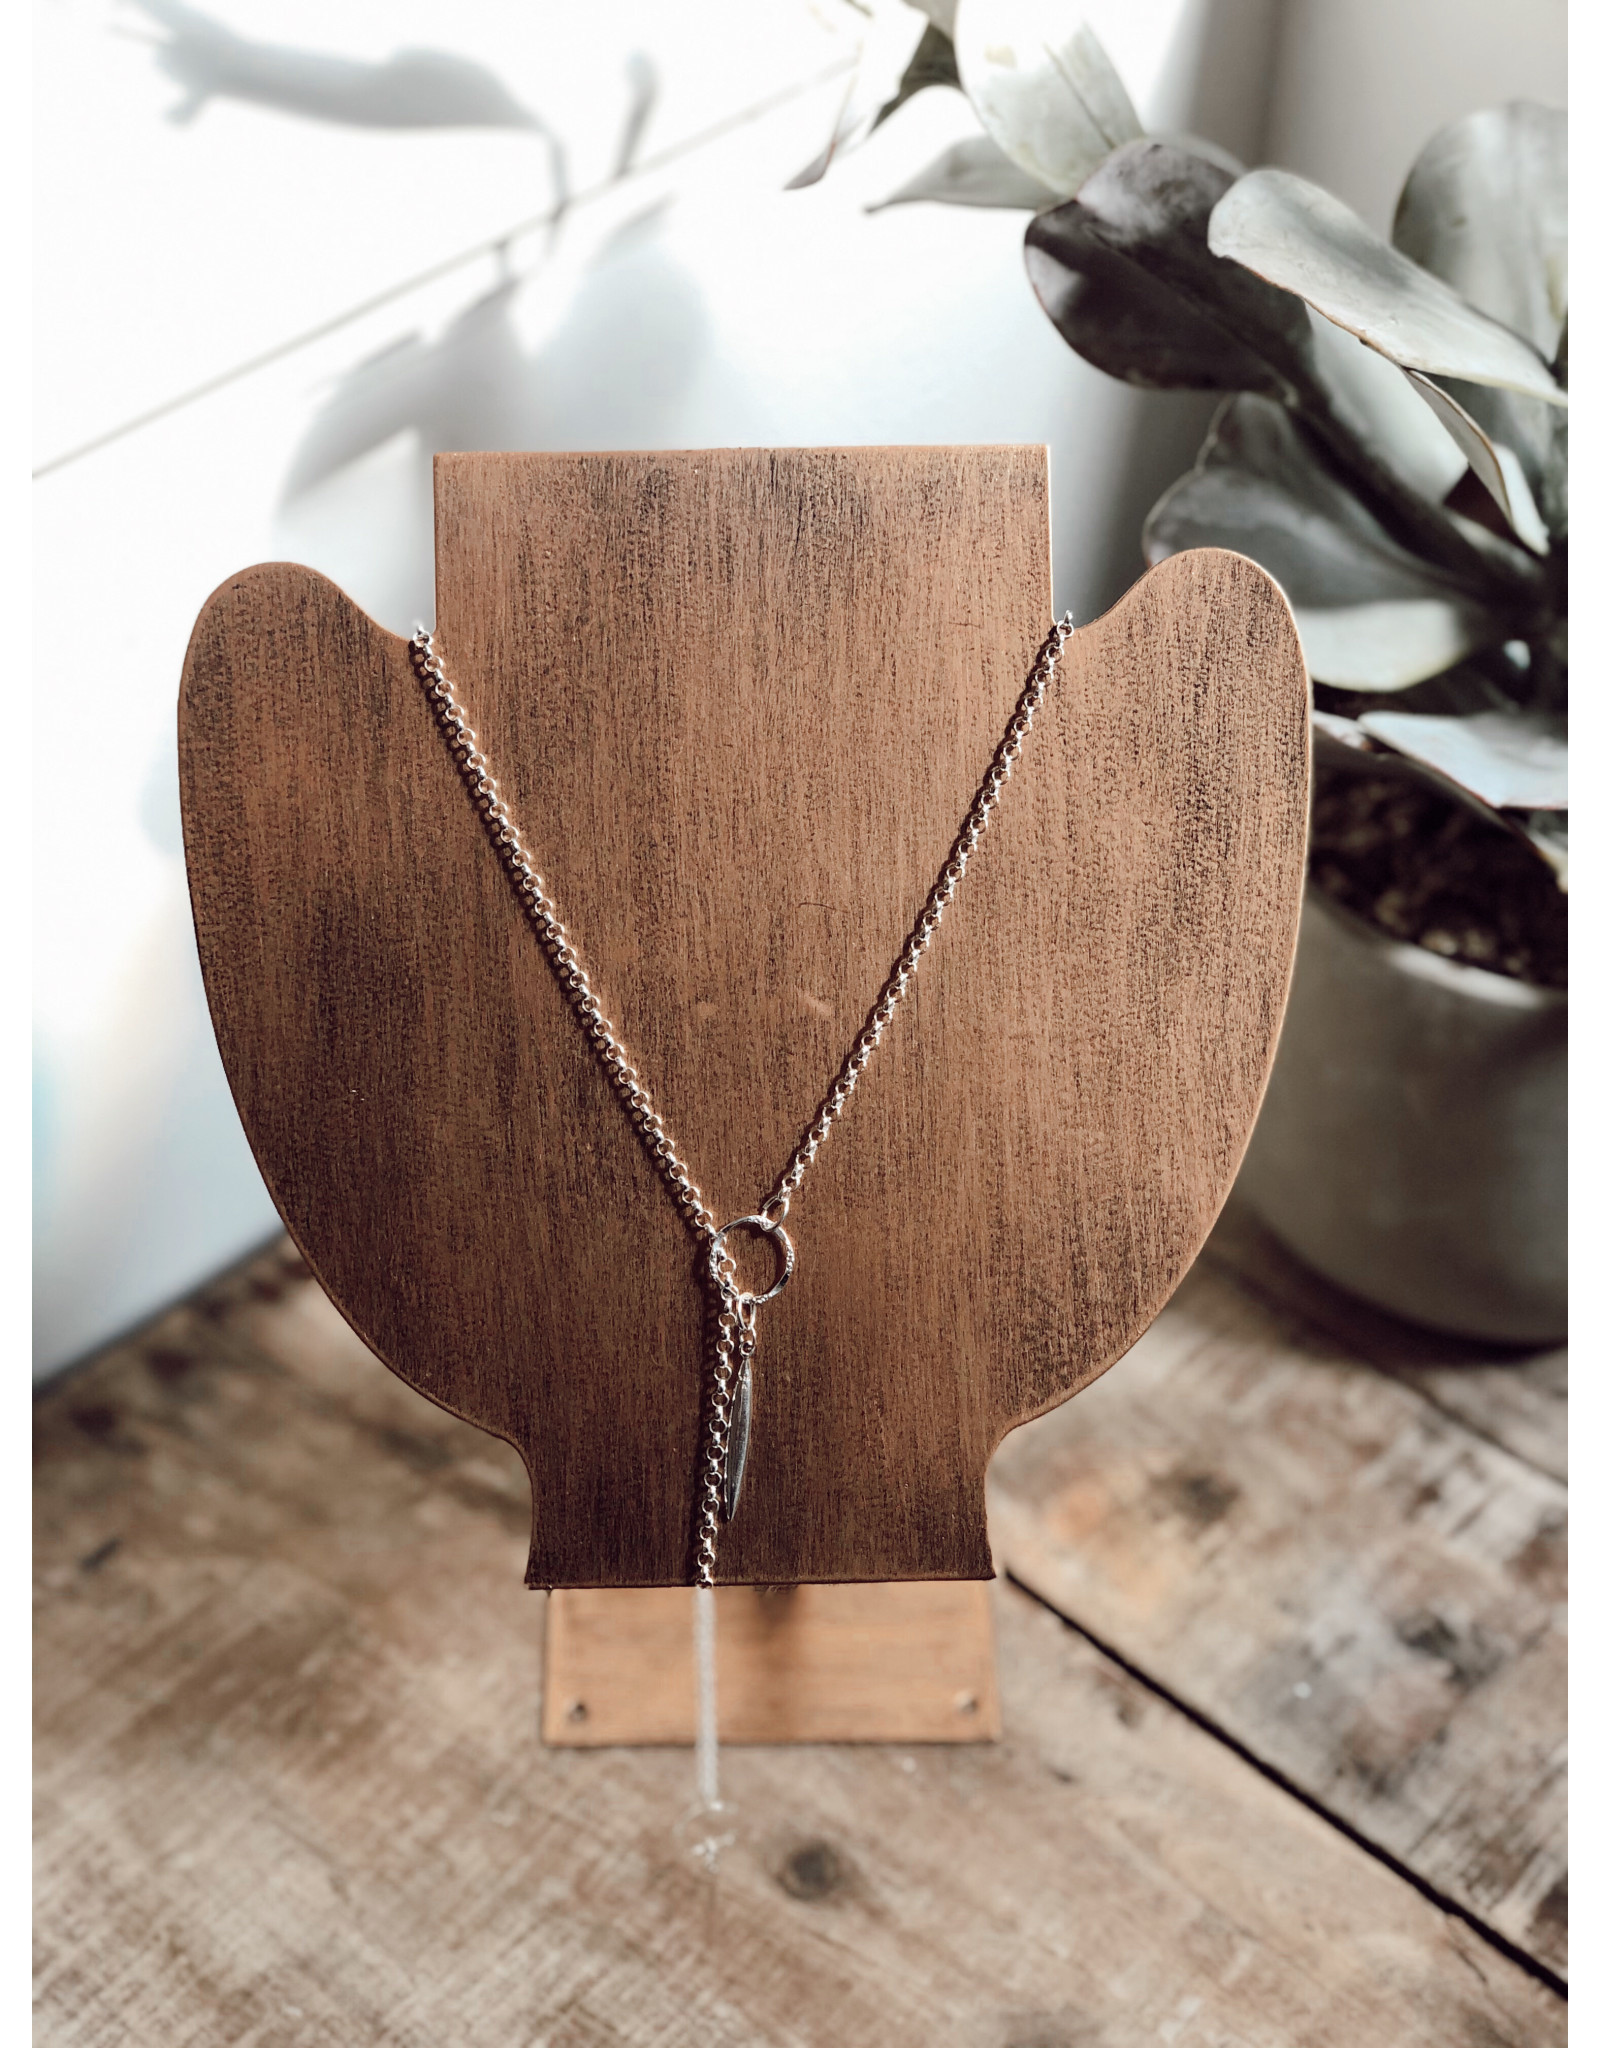 Helen Wang HW Lariat Sterling Silver Necklace